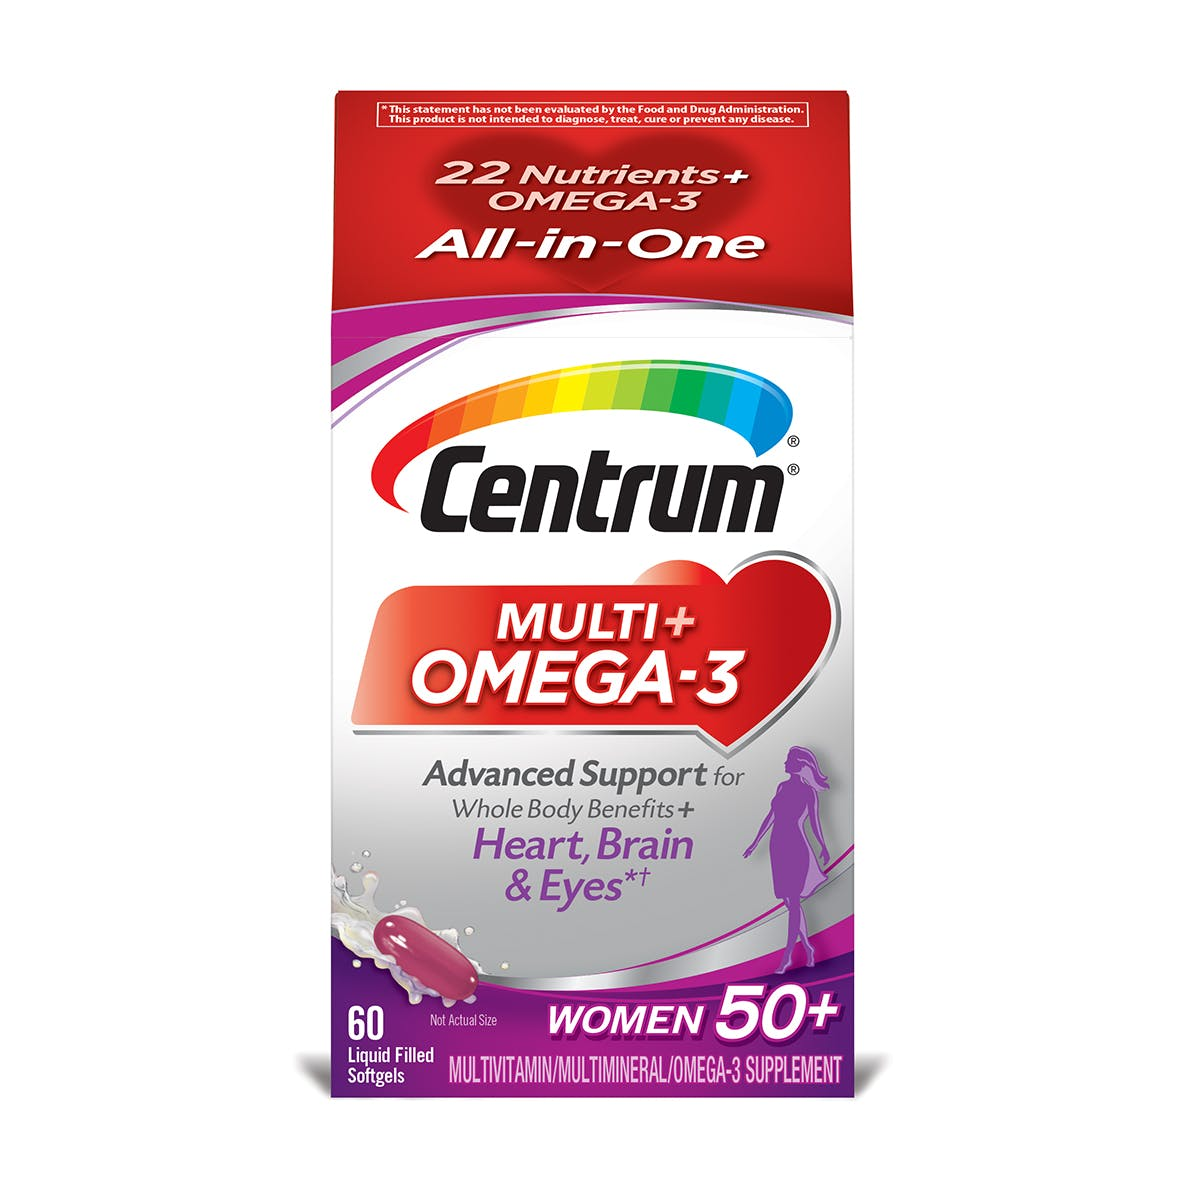 Box of Centrum Multi plus Omega 3 Women 50plus multivitamins